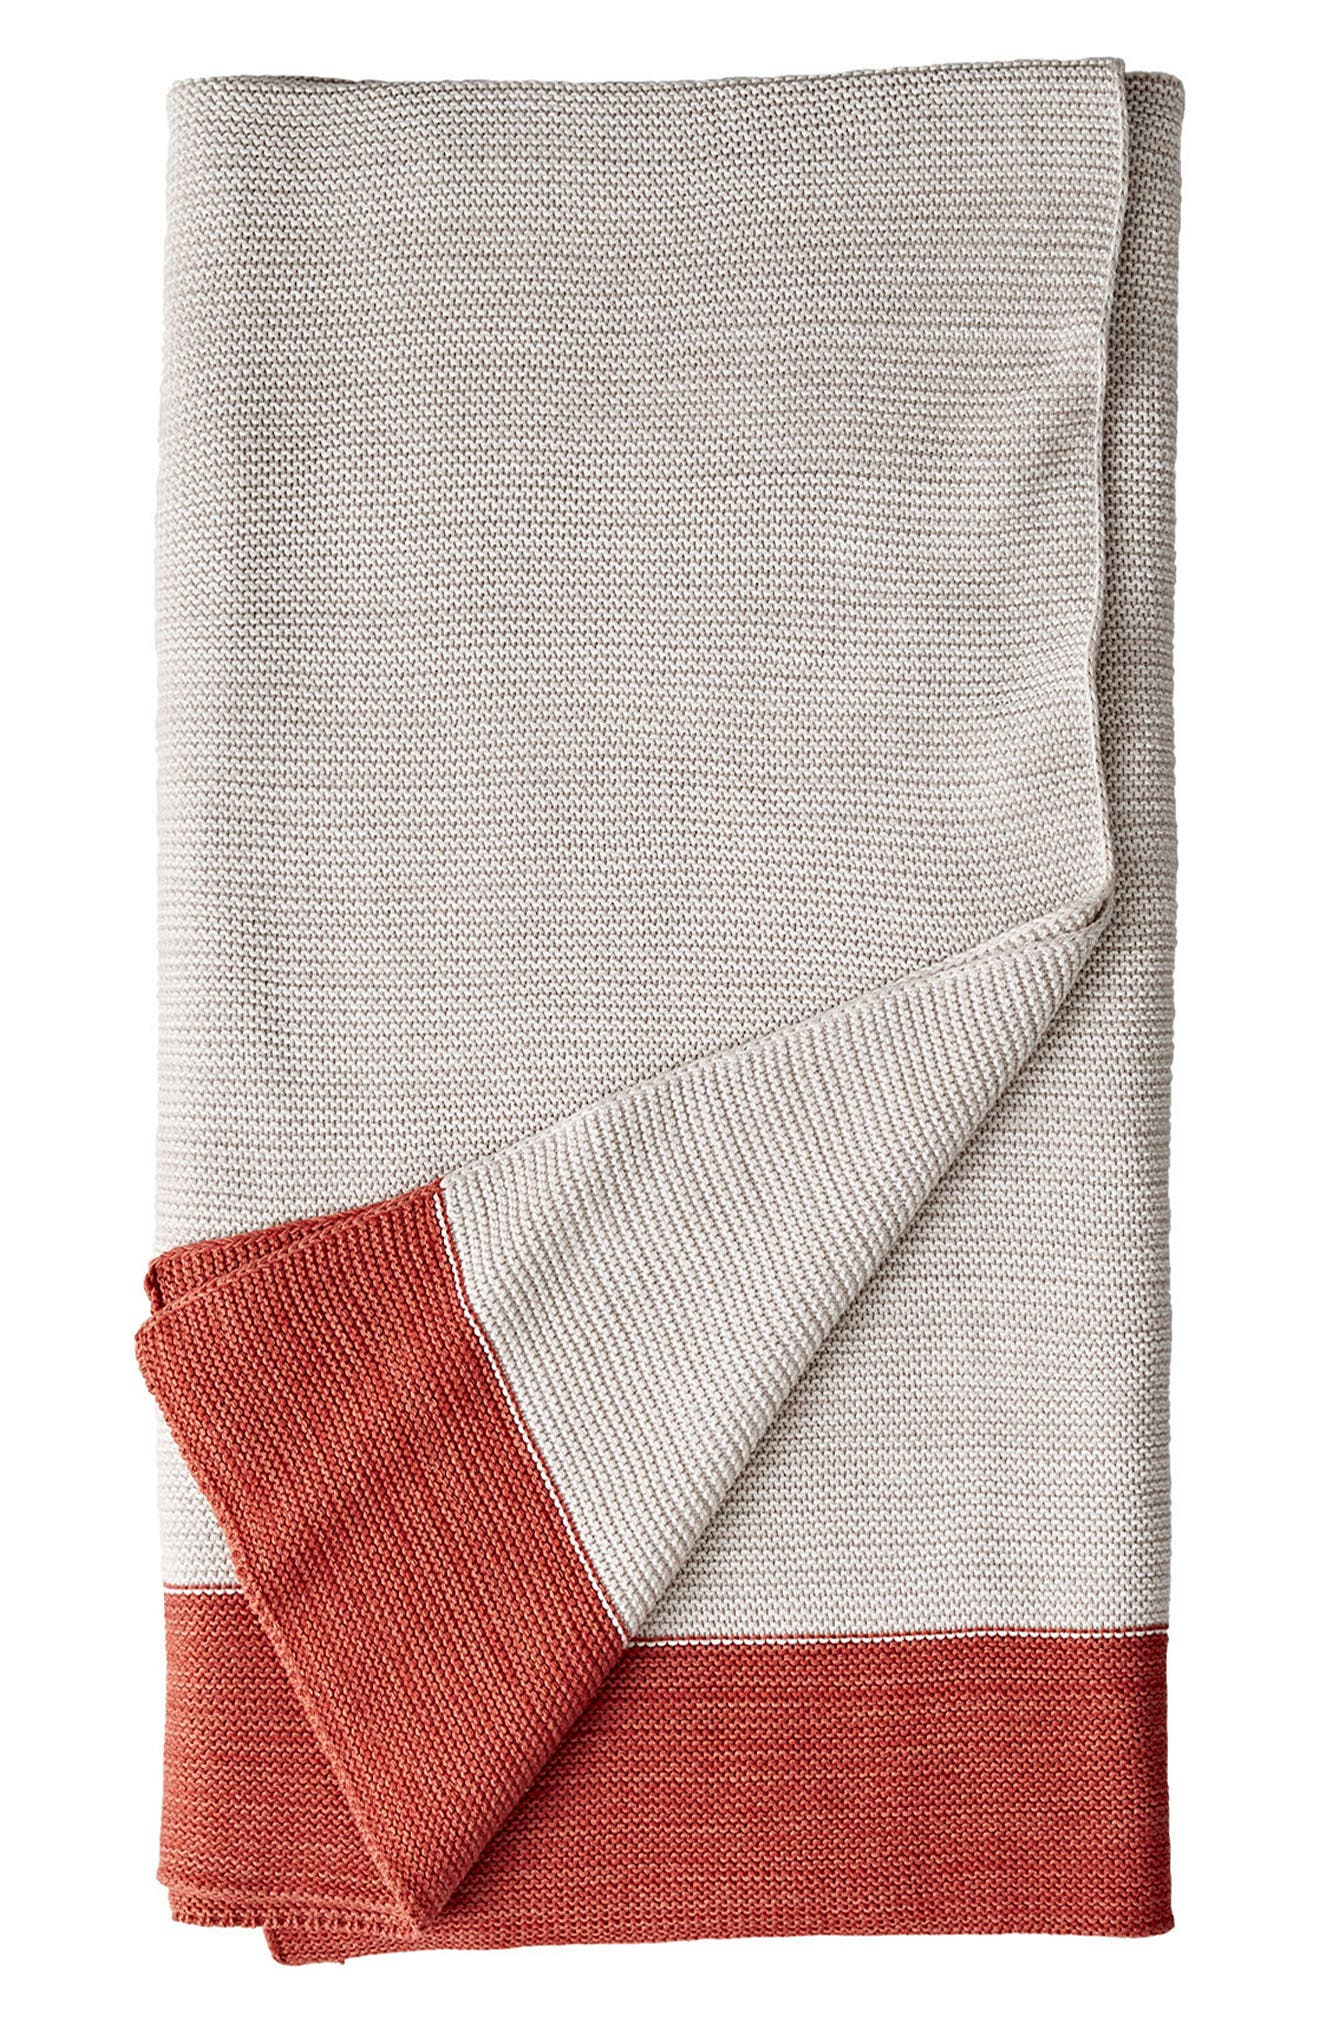 Marled Knit Throw,                         Main,                         color, 600